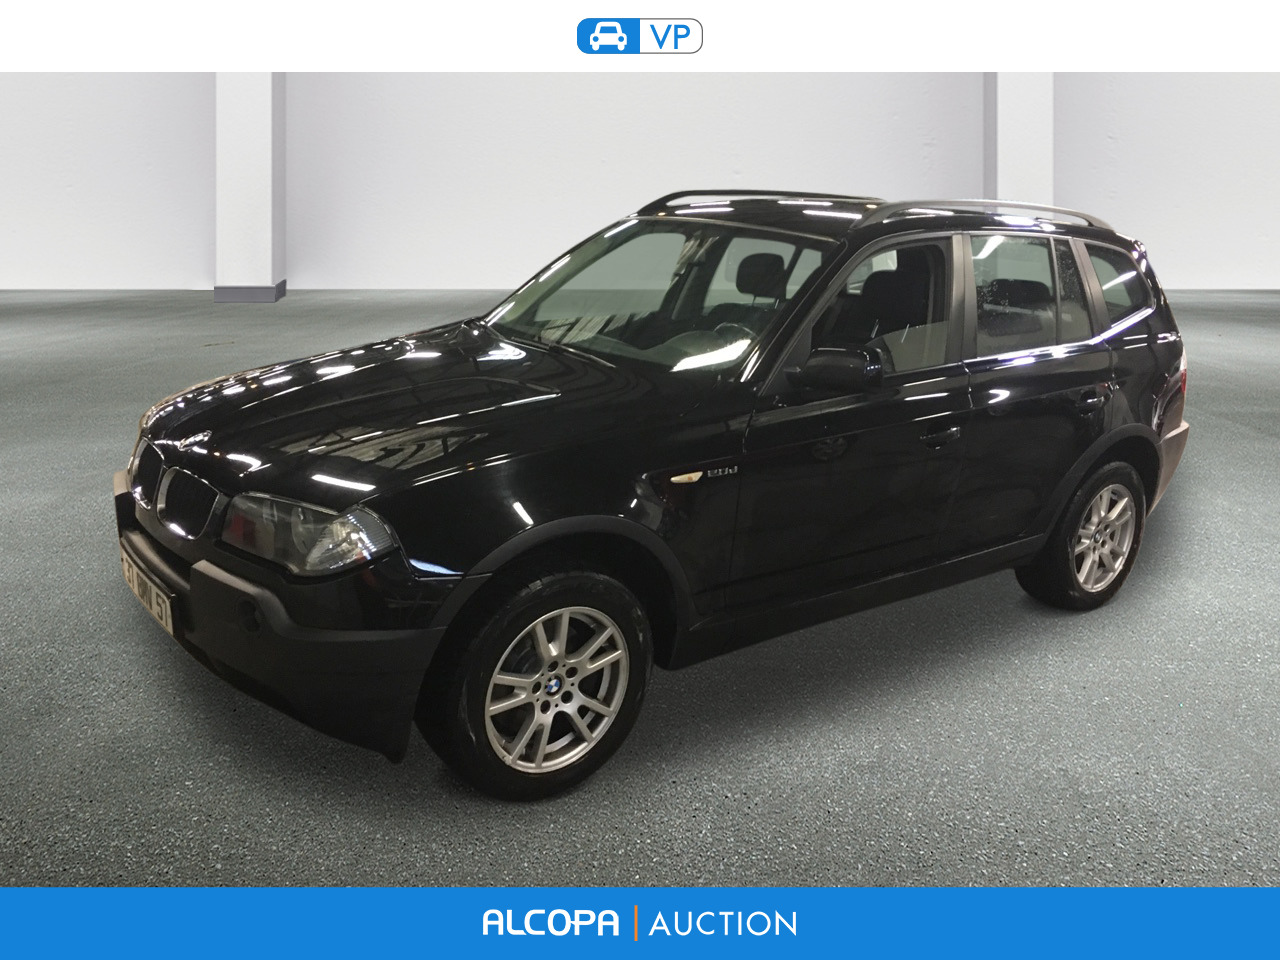 bmw x3 x3 2 0d 150ch premiere alcopa auction. Black Bedroom Furniture Sets. Home Design Ideas